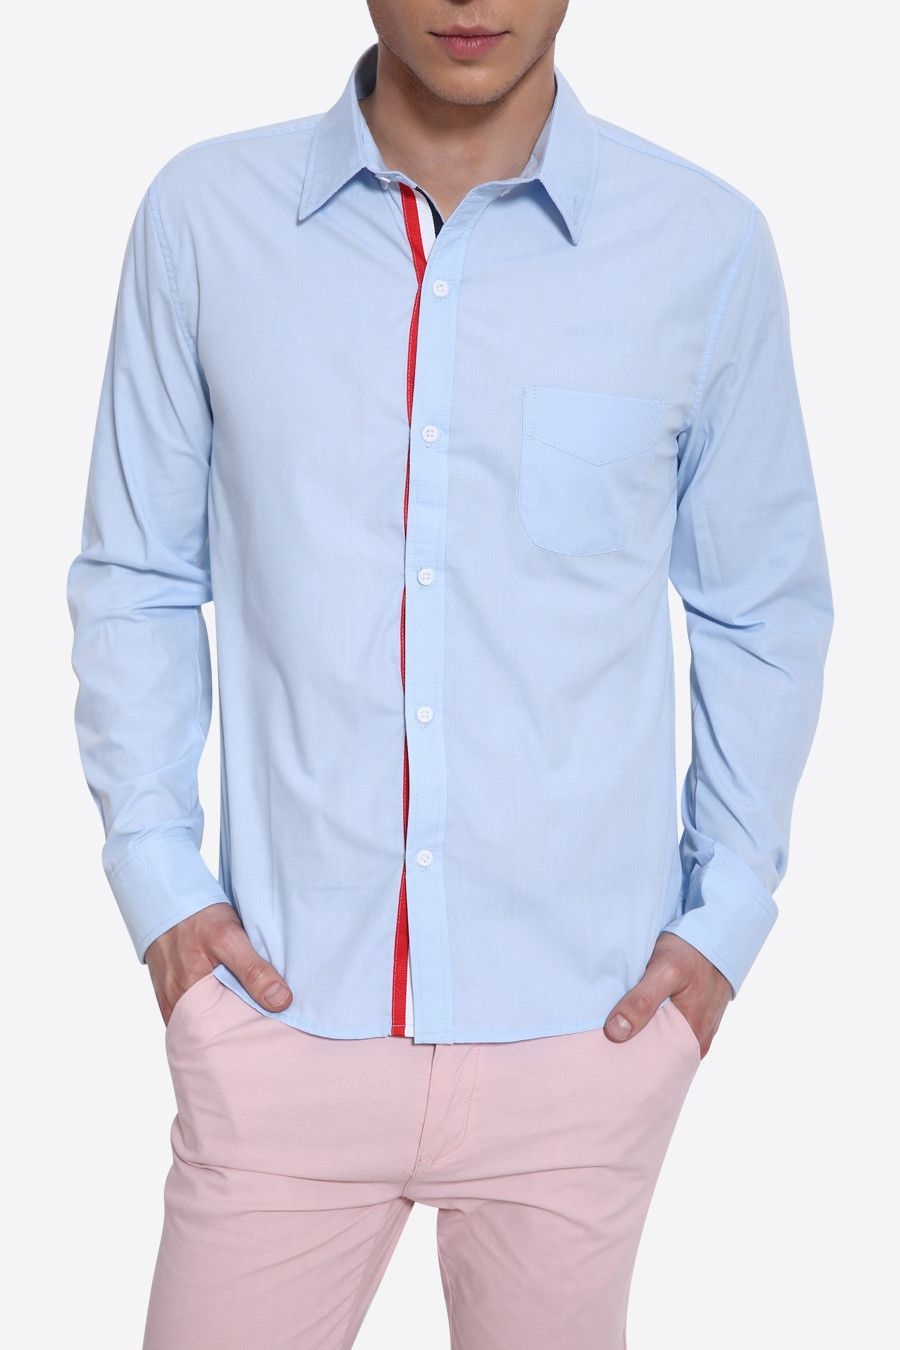 Slim Fit Tricolor Stripes Insert Long Sleeve Shirt In Light Blue